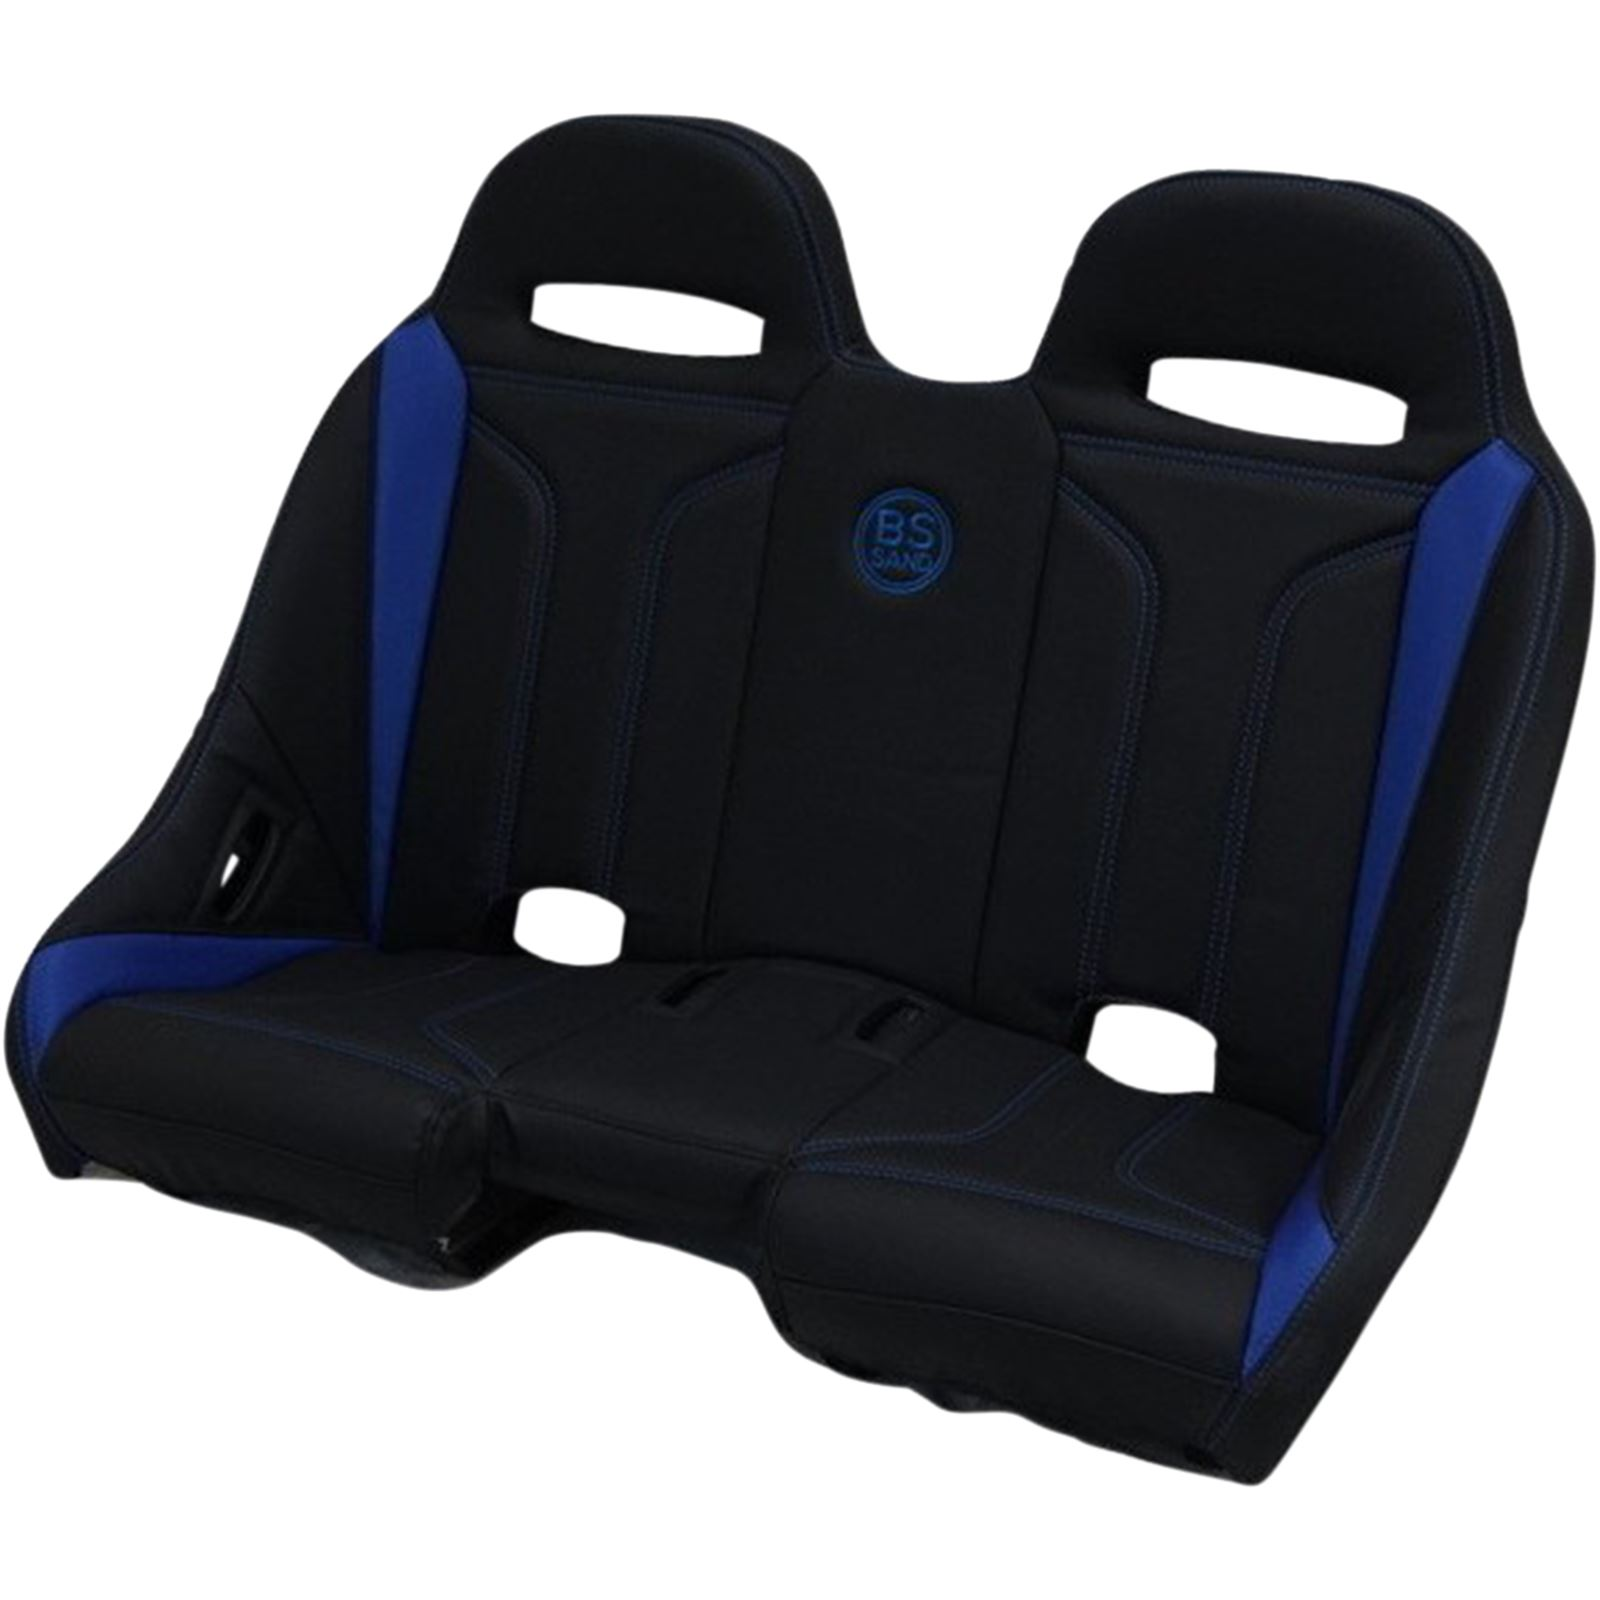 BS Sand Extreme Bench Seat - Black/Blue